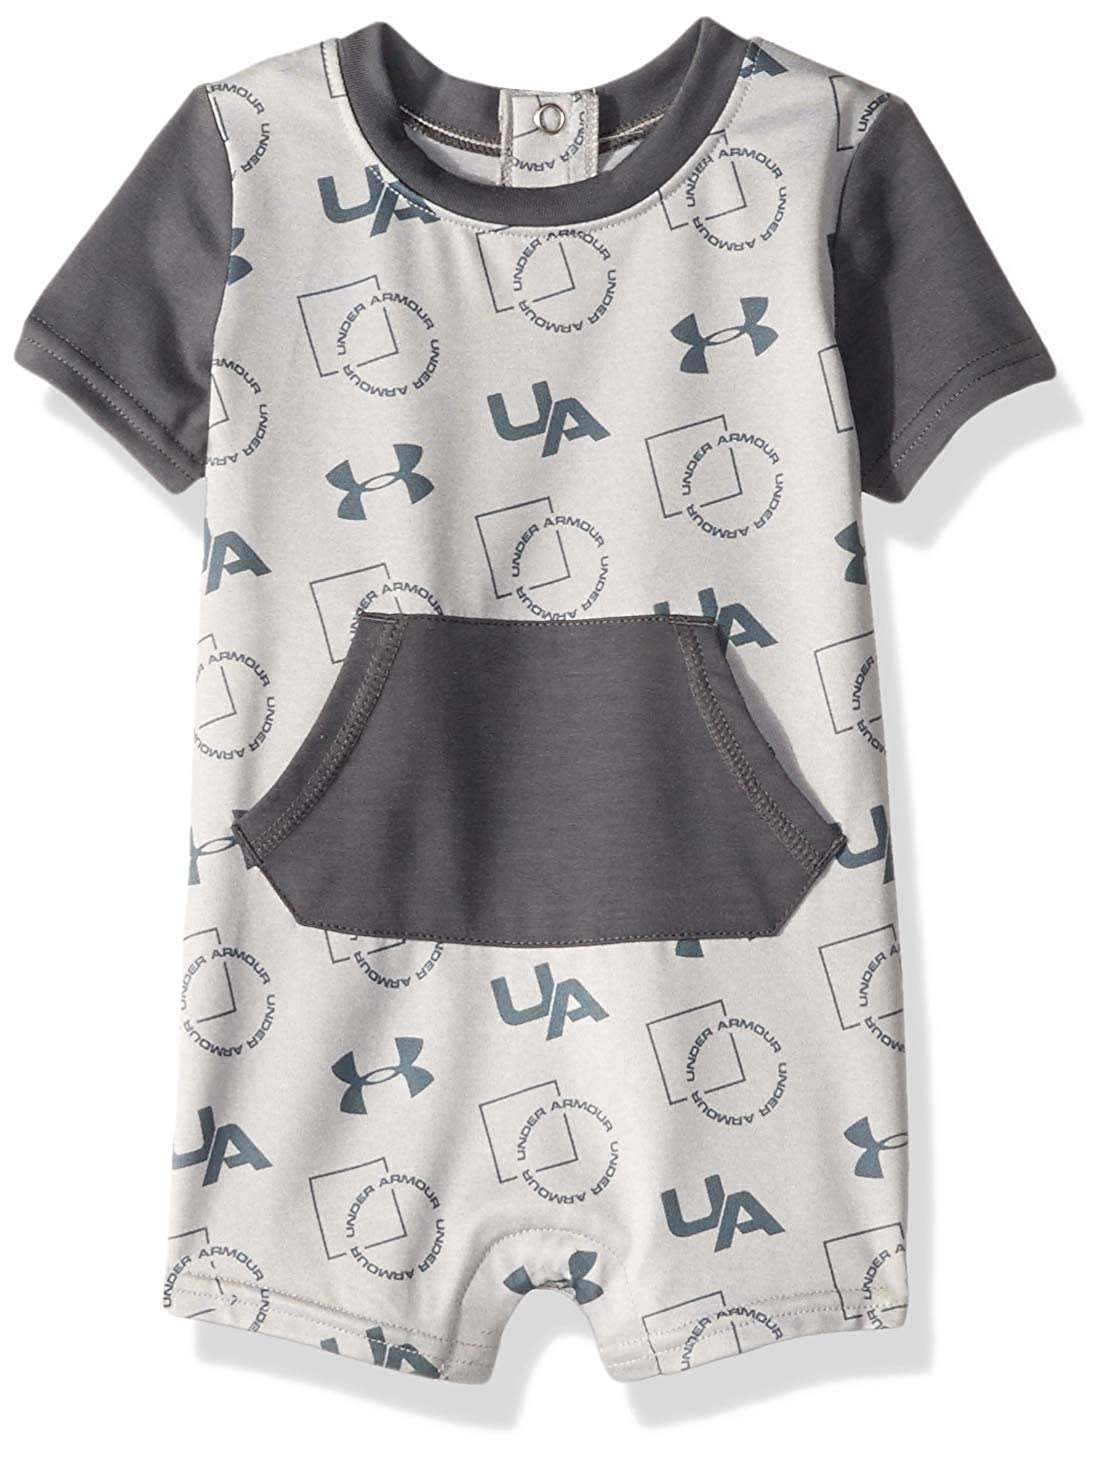 Under Armour Baby Boys USA Coverall